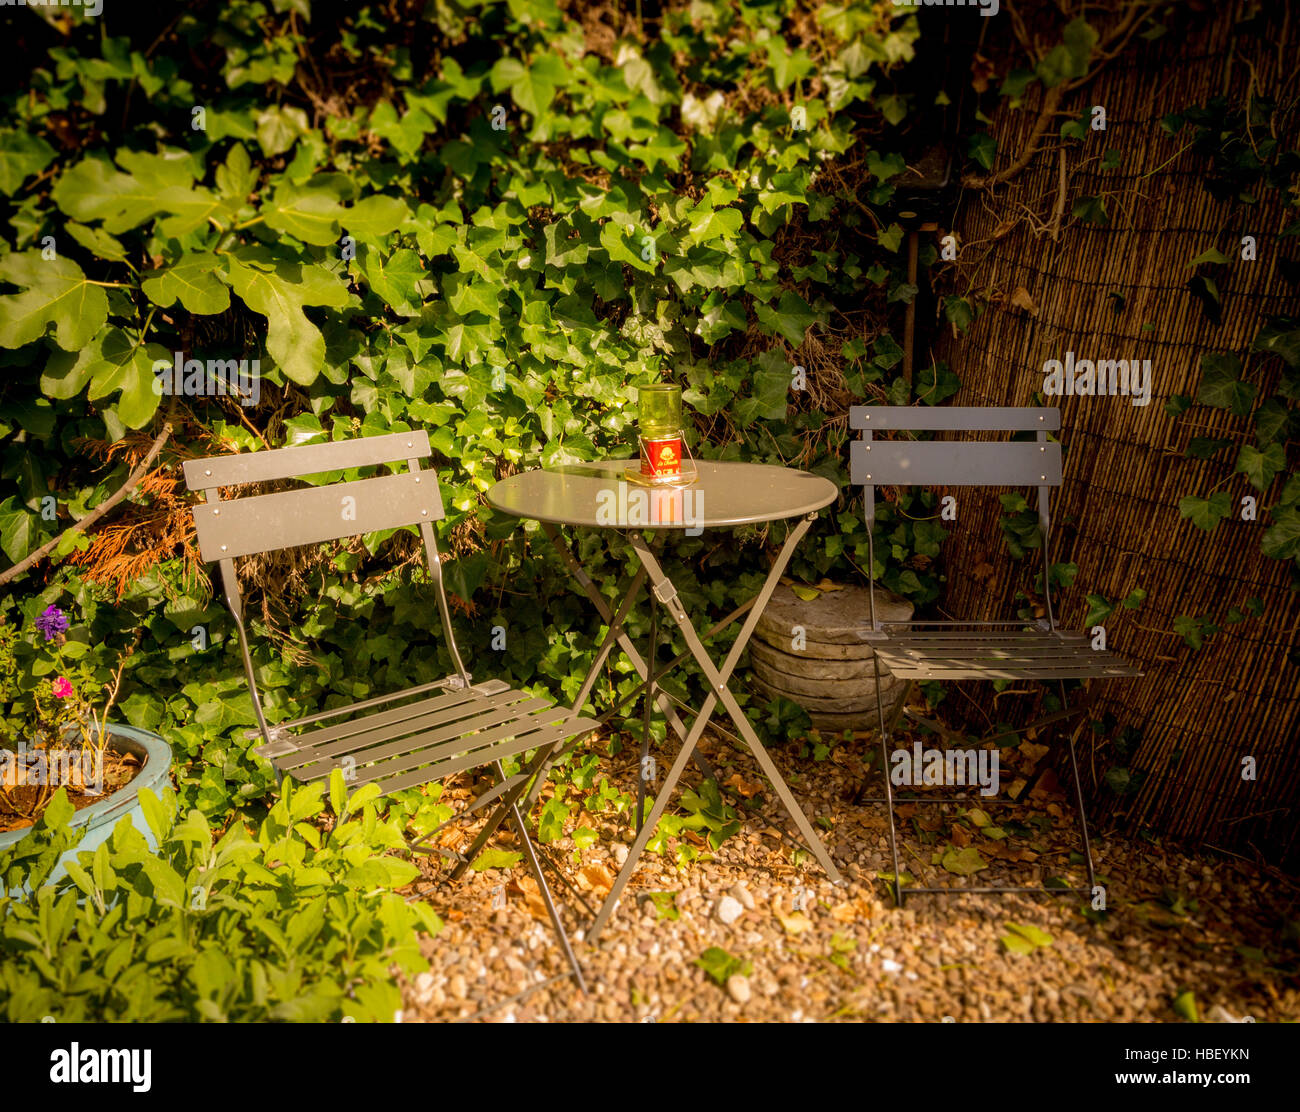 Metal Chairs And Table Stock Photos & Metal Chairs And Table Stock ...